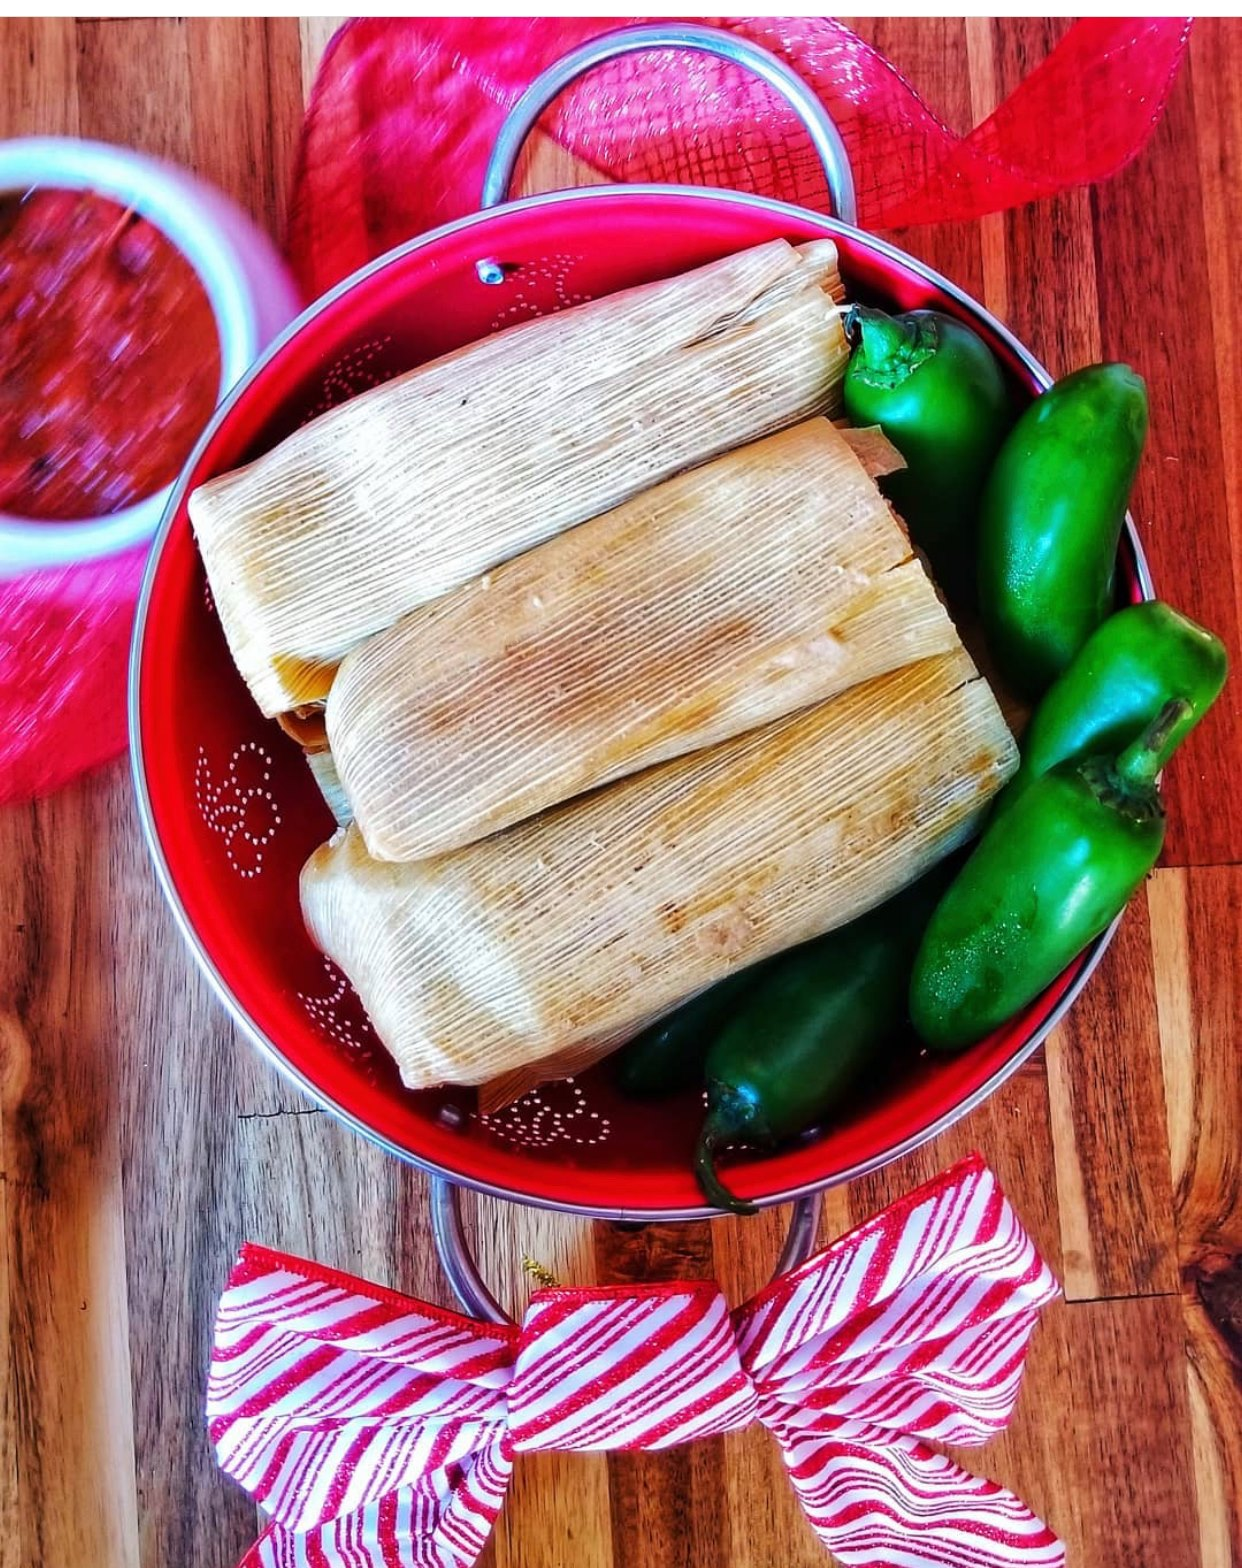 Three tamales in a red bowl with green peppers